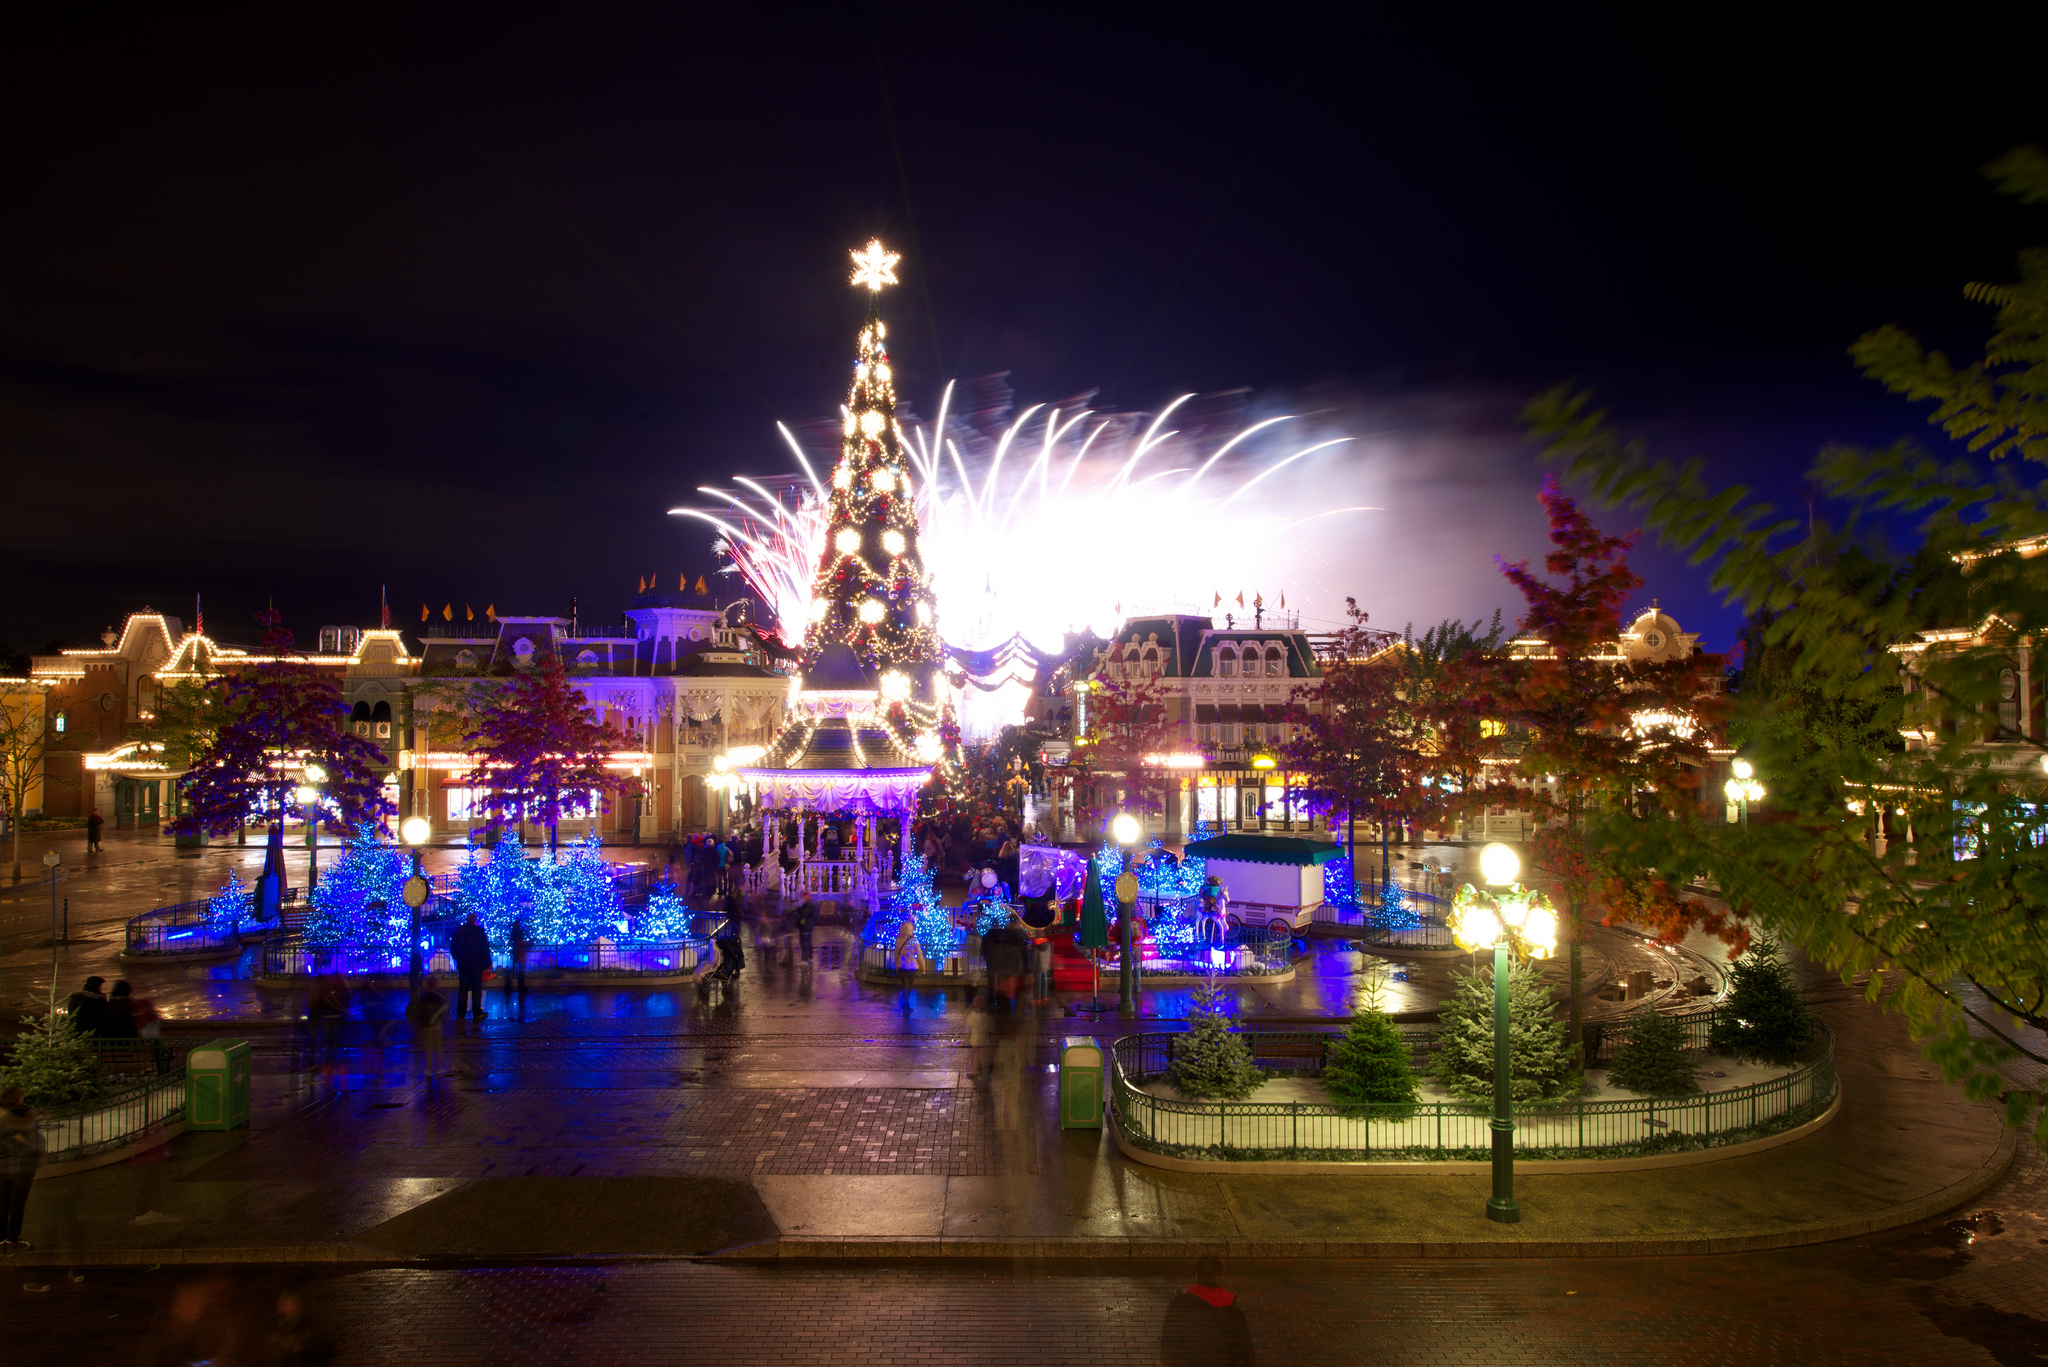 Christmas 2012 In Disneyland Paris. Photo By Kris Van De Sande